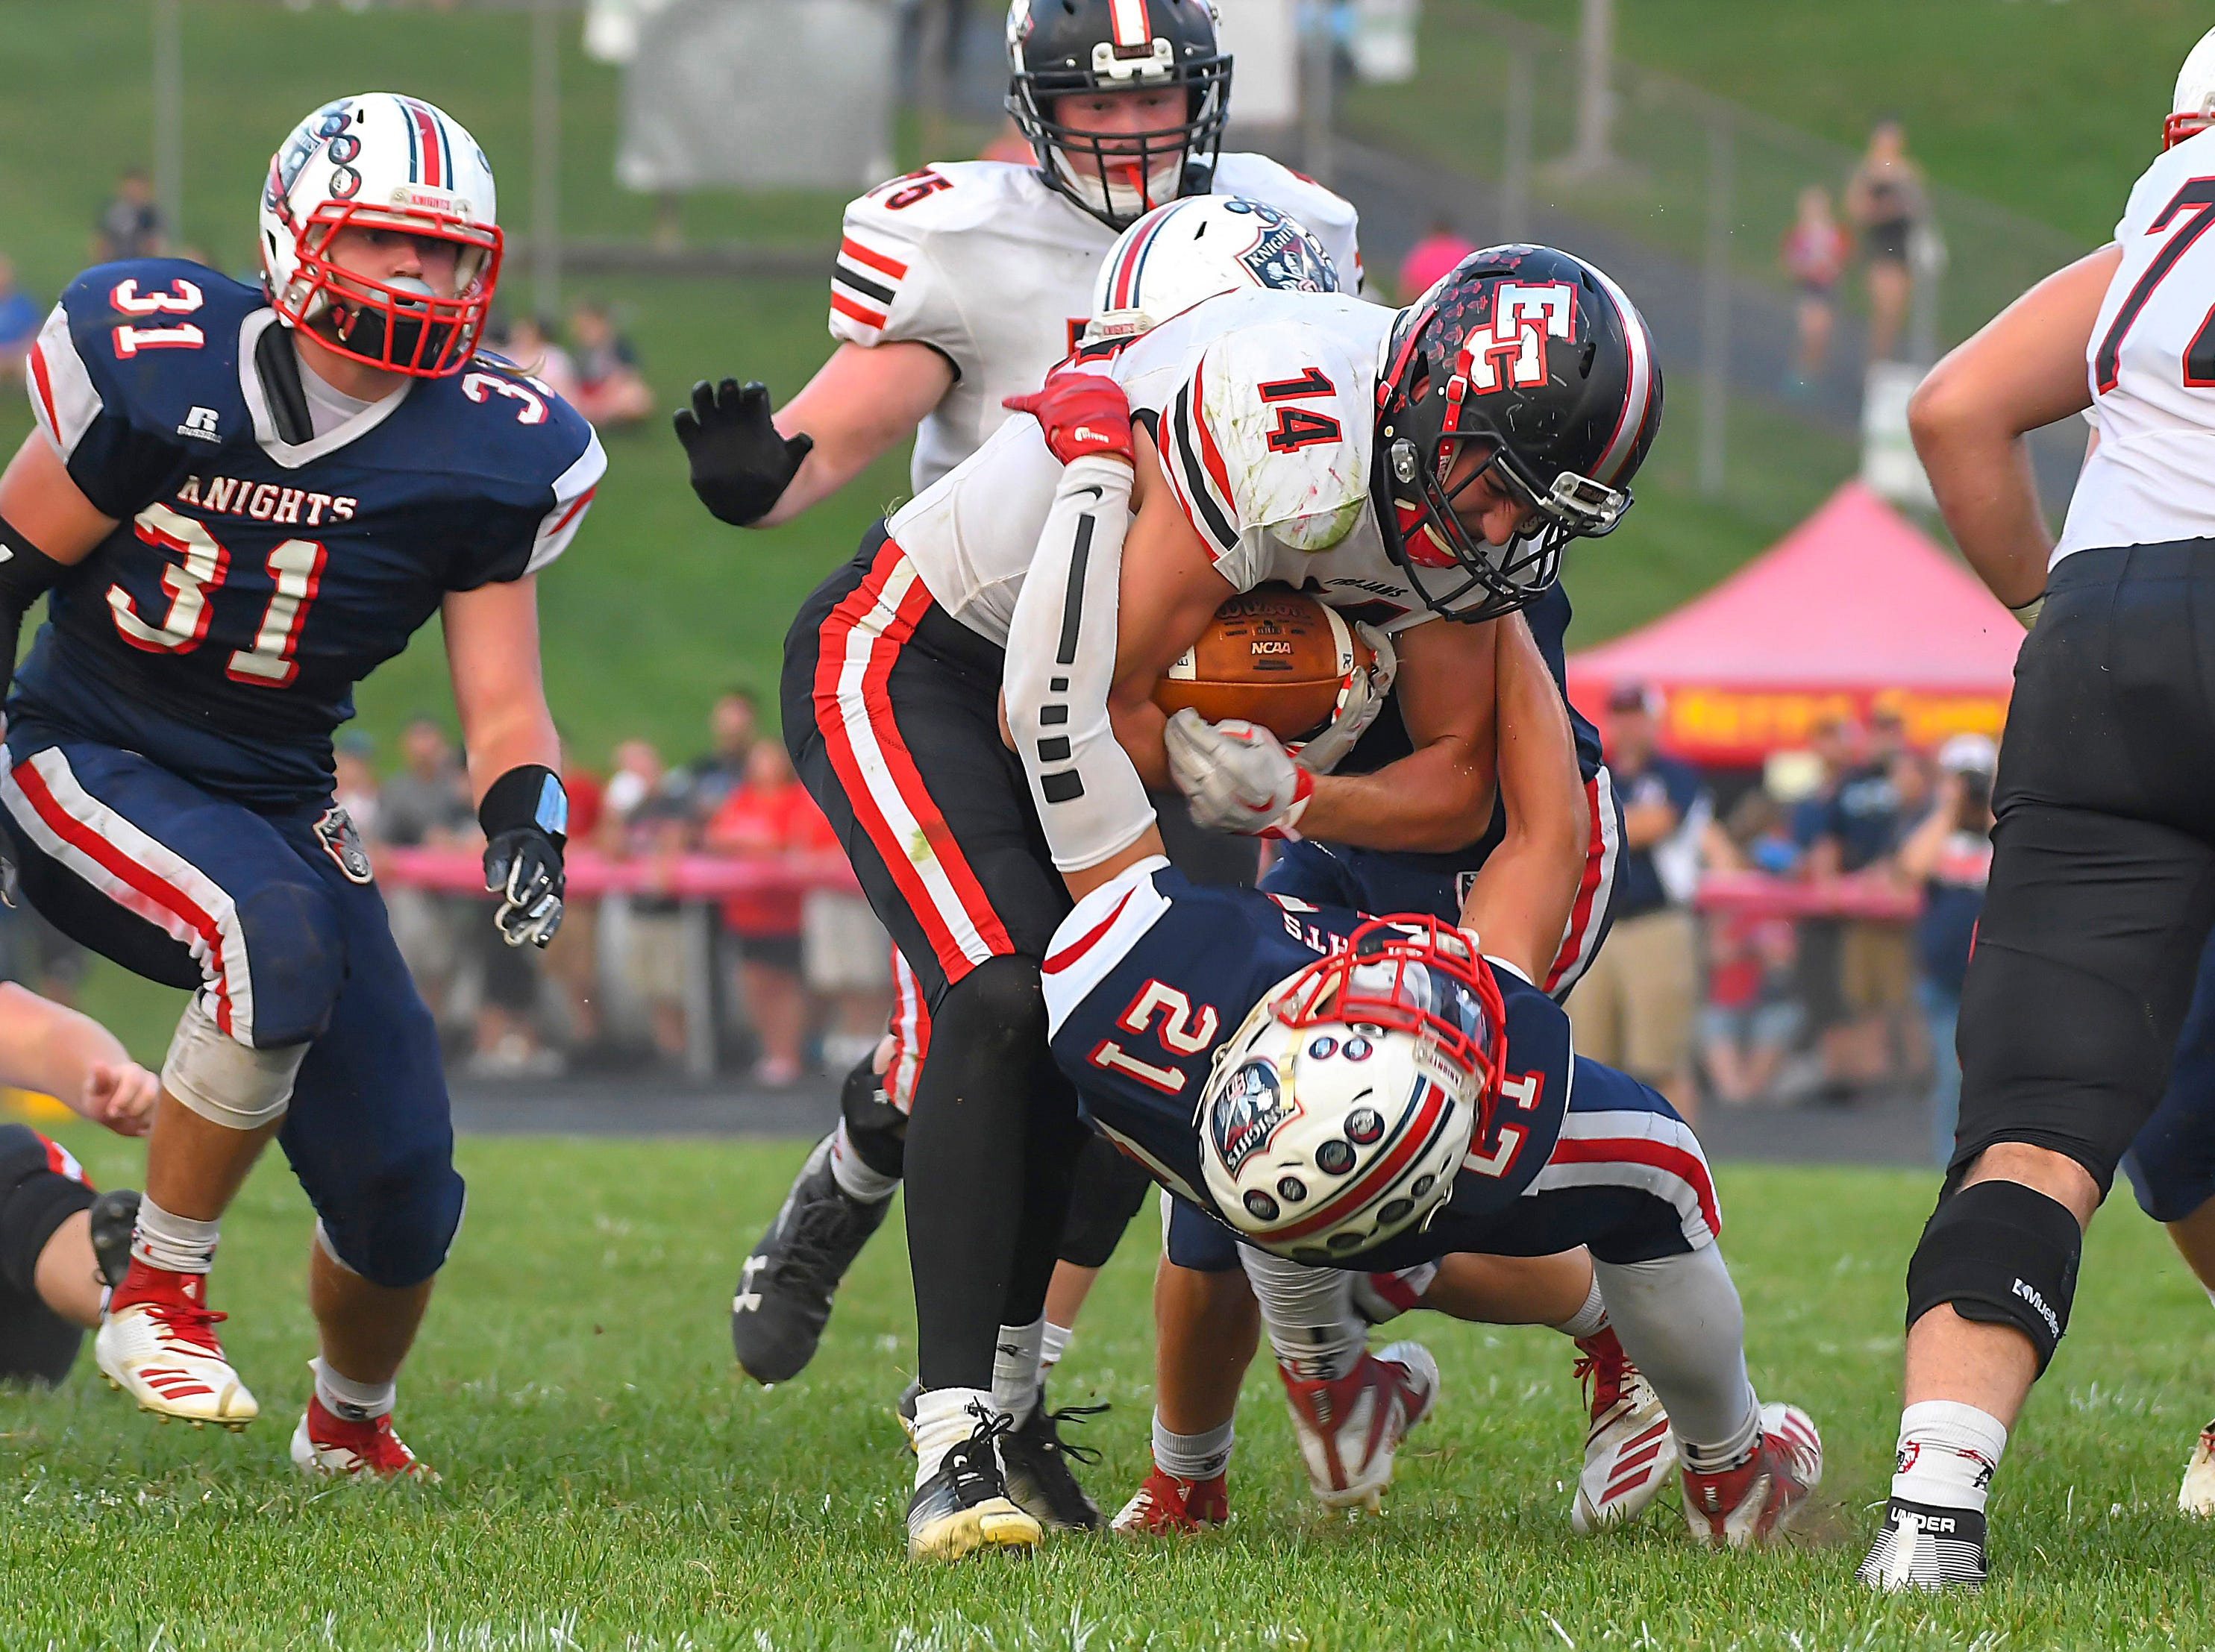 East Central running back Eric Rosemeyer (14) steamrolls a South Dearborn defender in the first quarter, South Dearborn High School, Aurora, Indiana, Friday September 21, 2018